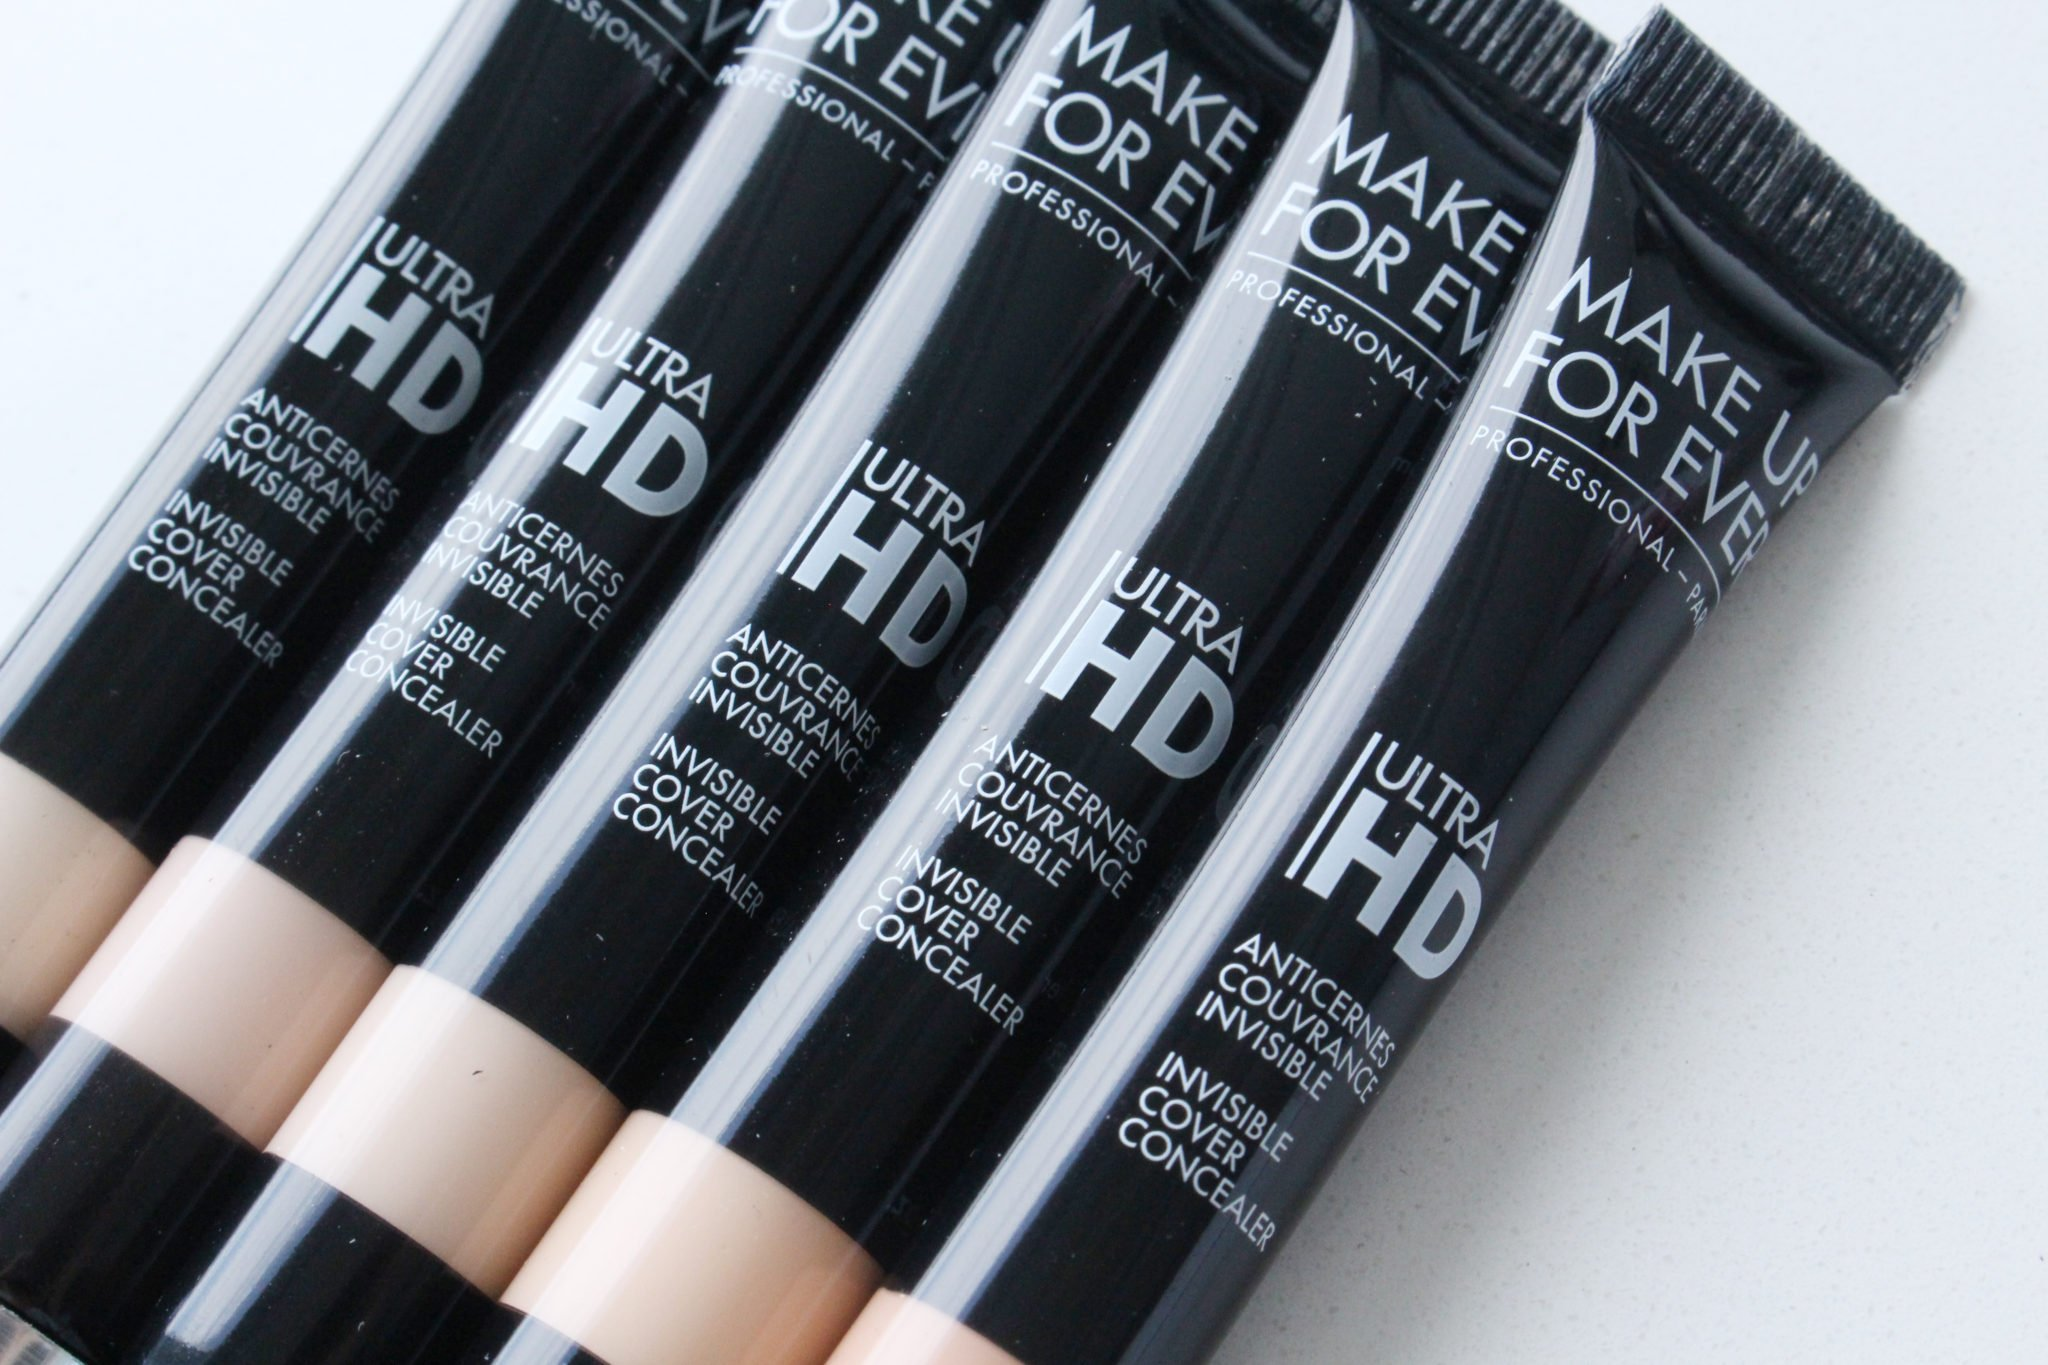 Makeup Forever Ultra HD Concealer Review